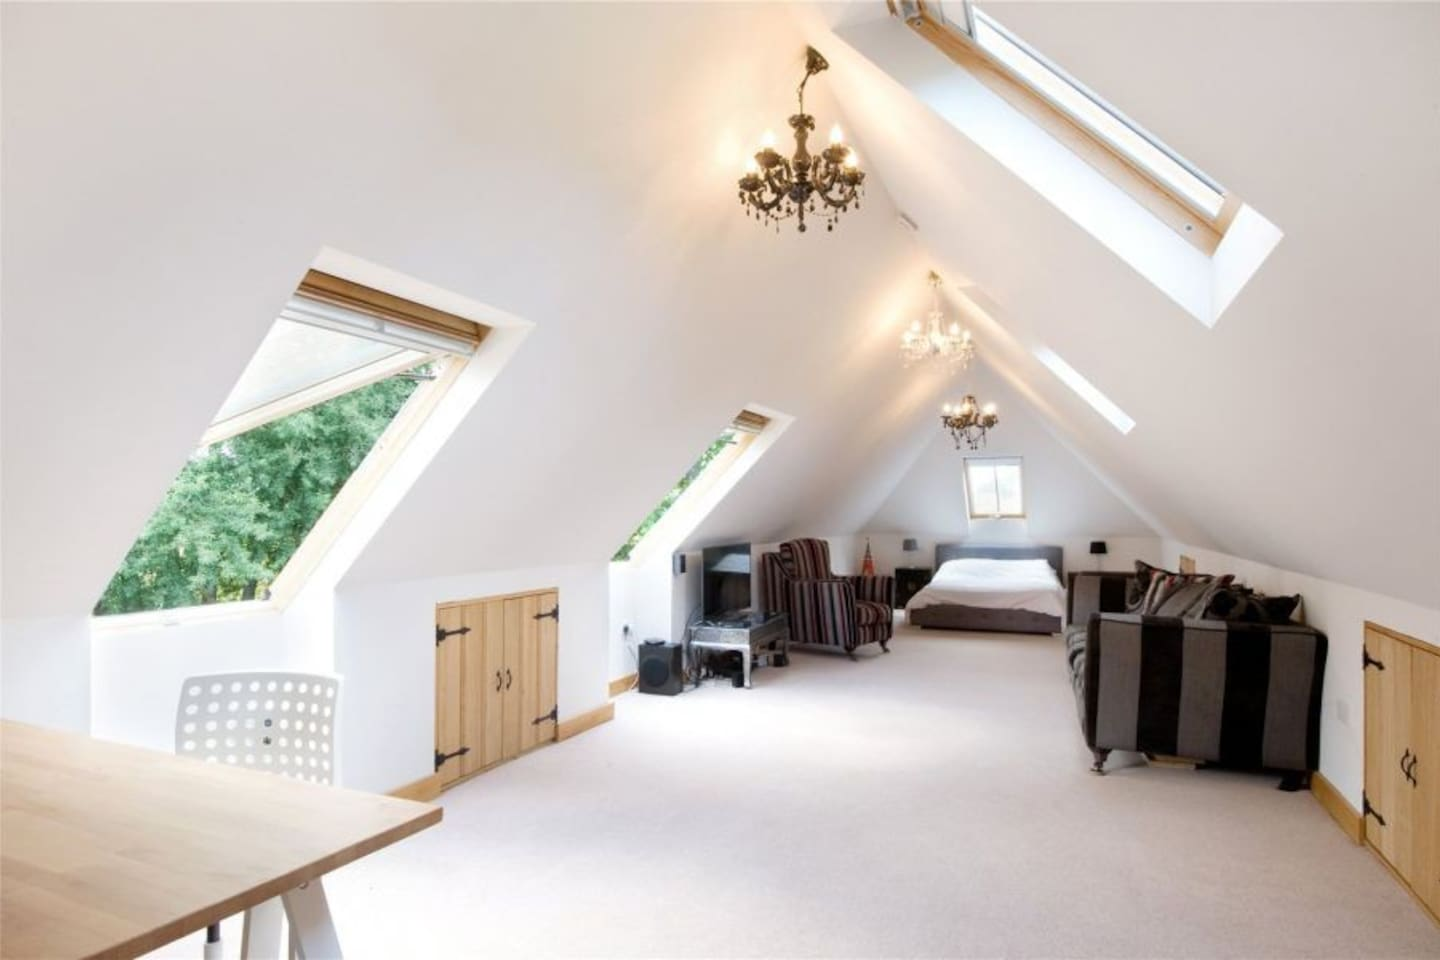 Spacious open plan space with views